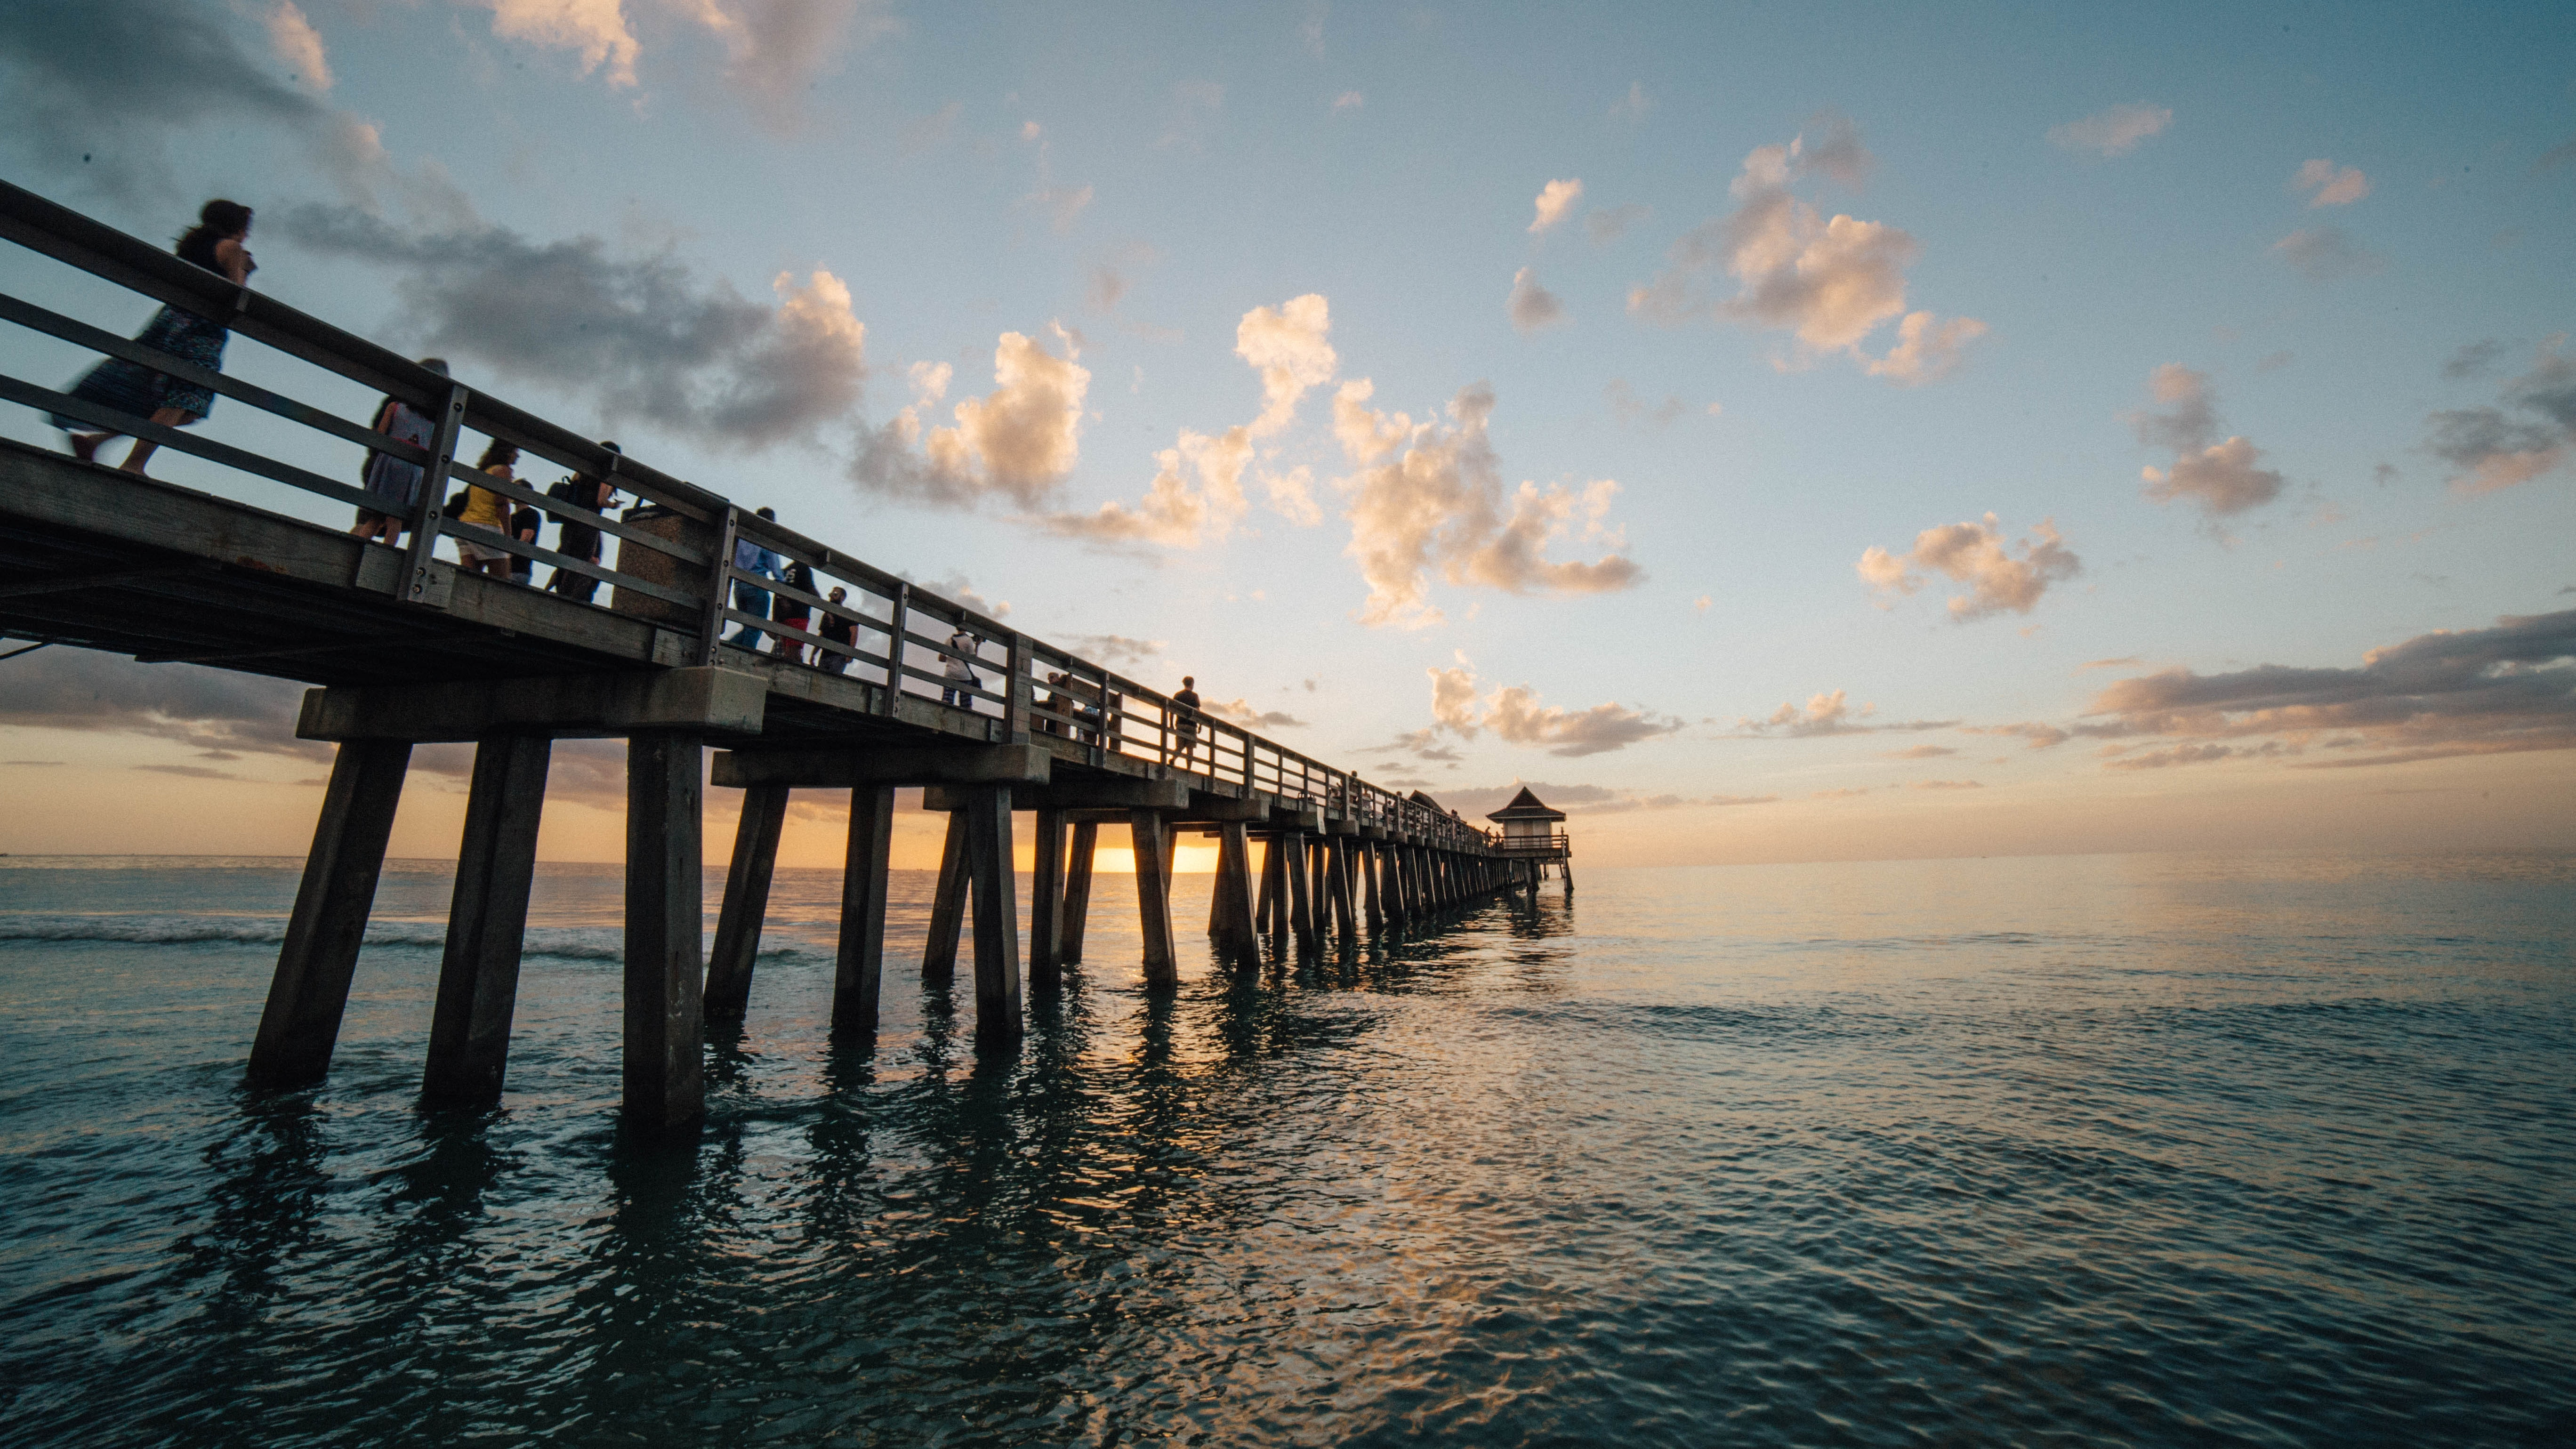 Pier on Sea Against Cloudy Sky, Scenic, Wood, Water, Travel, HQ Photo